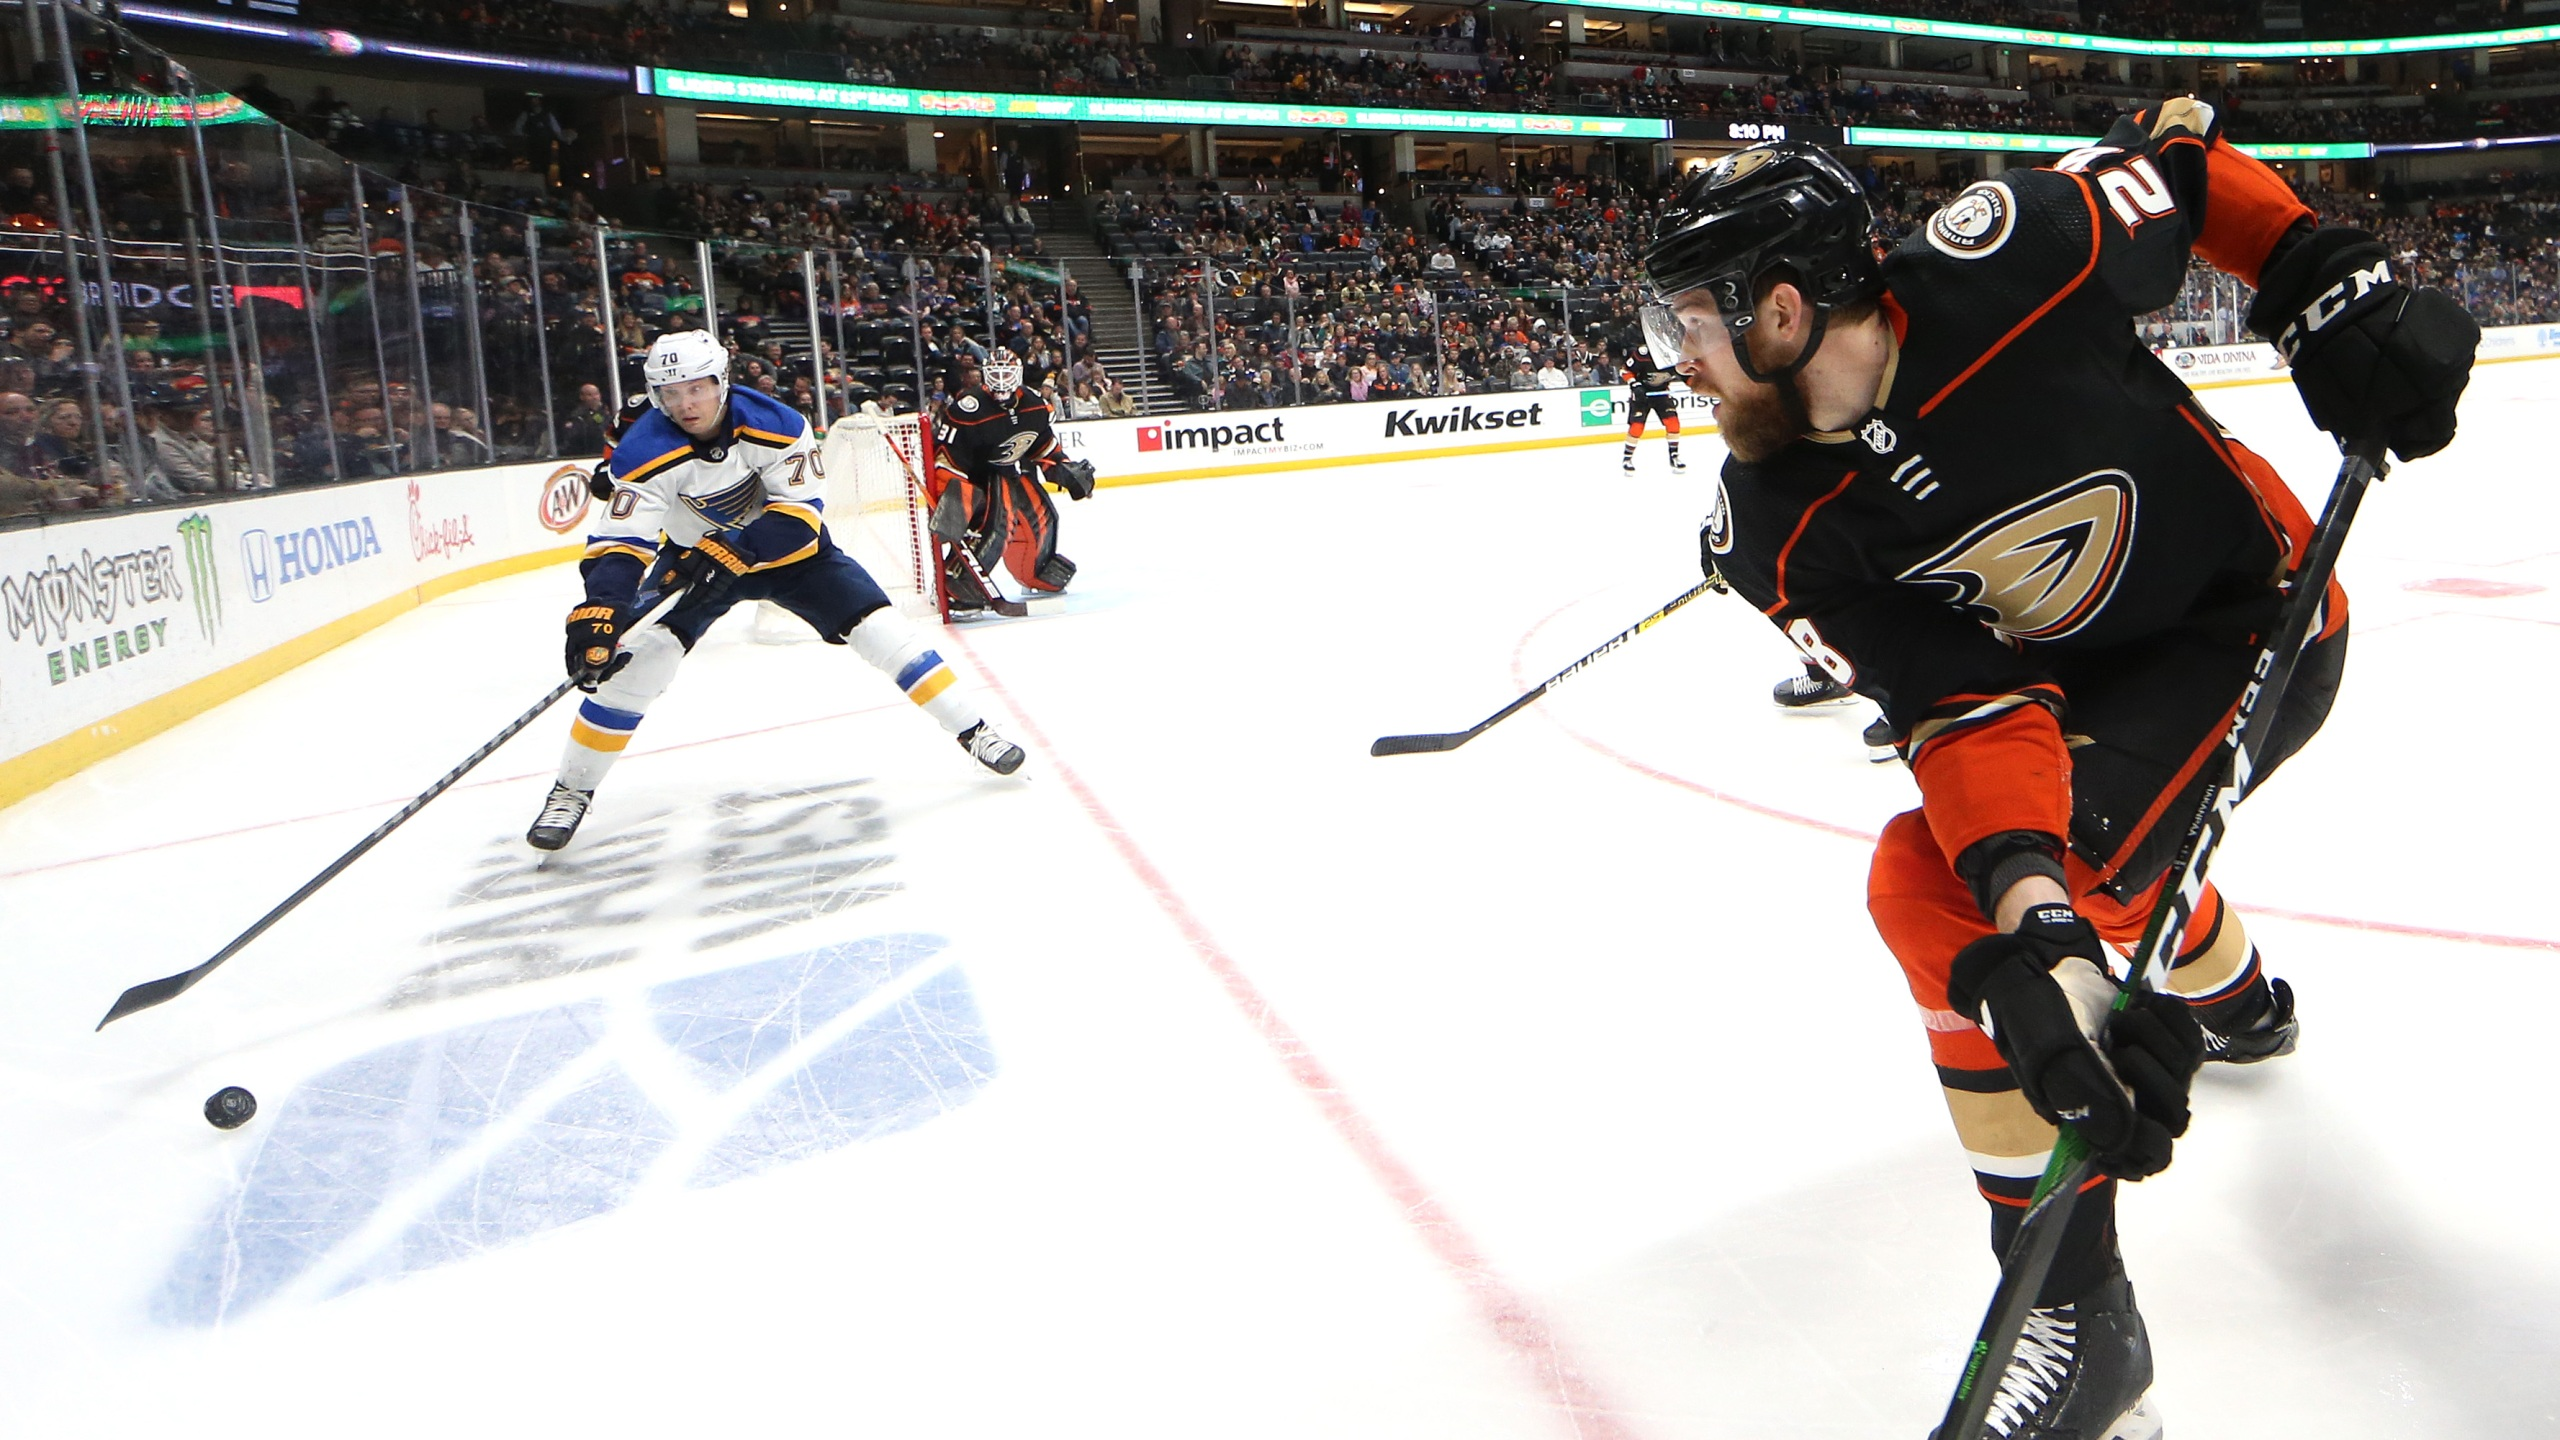 Oskar Sundqvist #70 of the St. Louis Blues controls the puck as Jani Hakanpaa #28 of the Anaheim Ducks defends during the second period of a game at Honda Center on March 11, 2020 in Anaheim. (Sean M. Haffey/Getty Images)